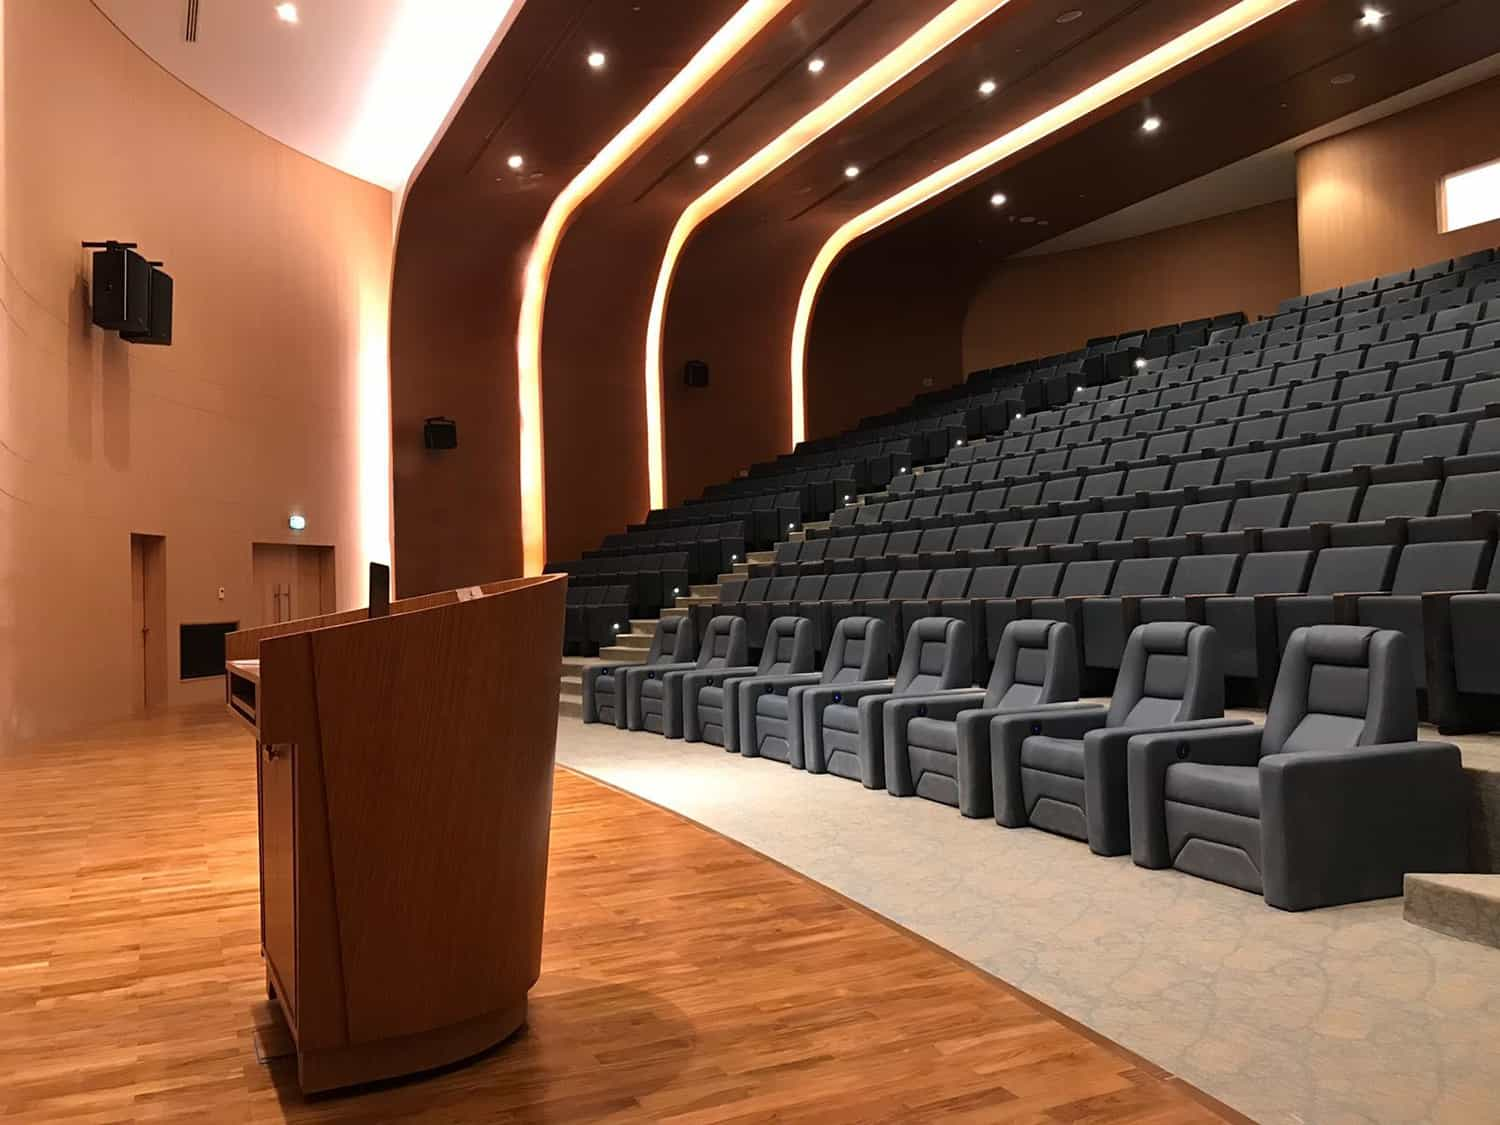 theatre seating for an auditorium